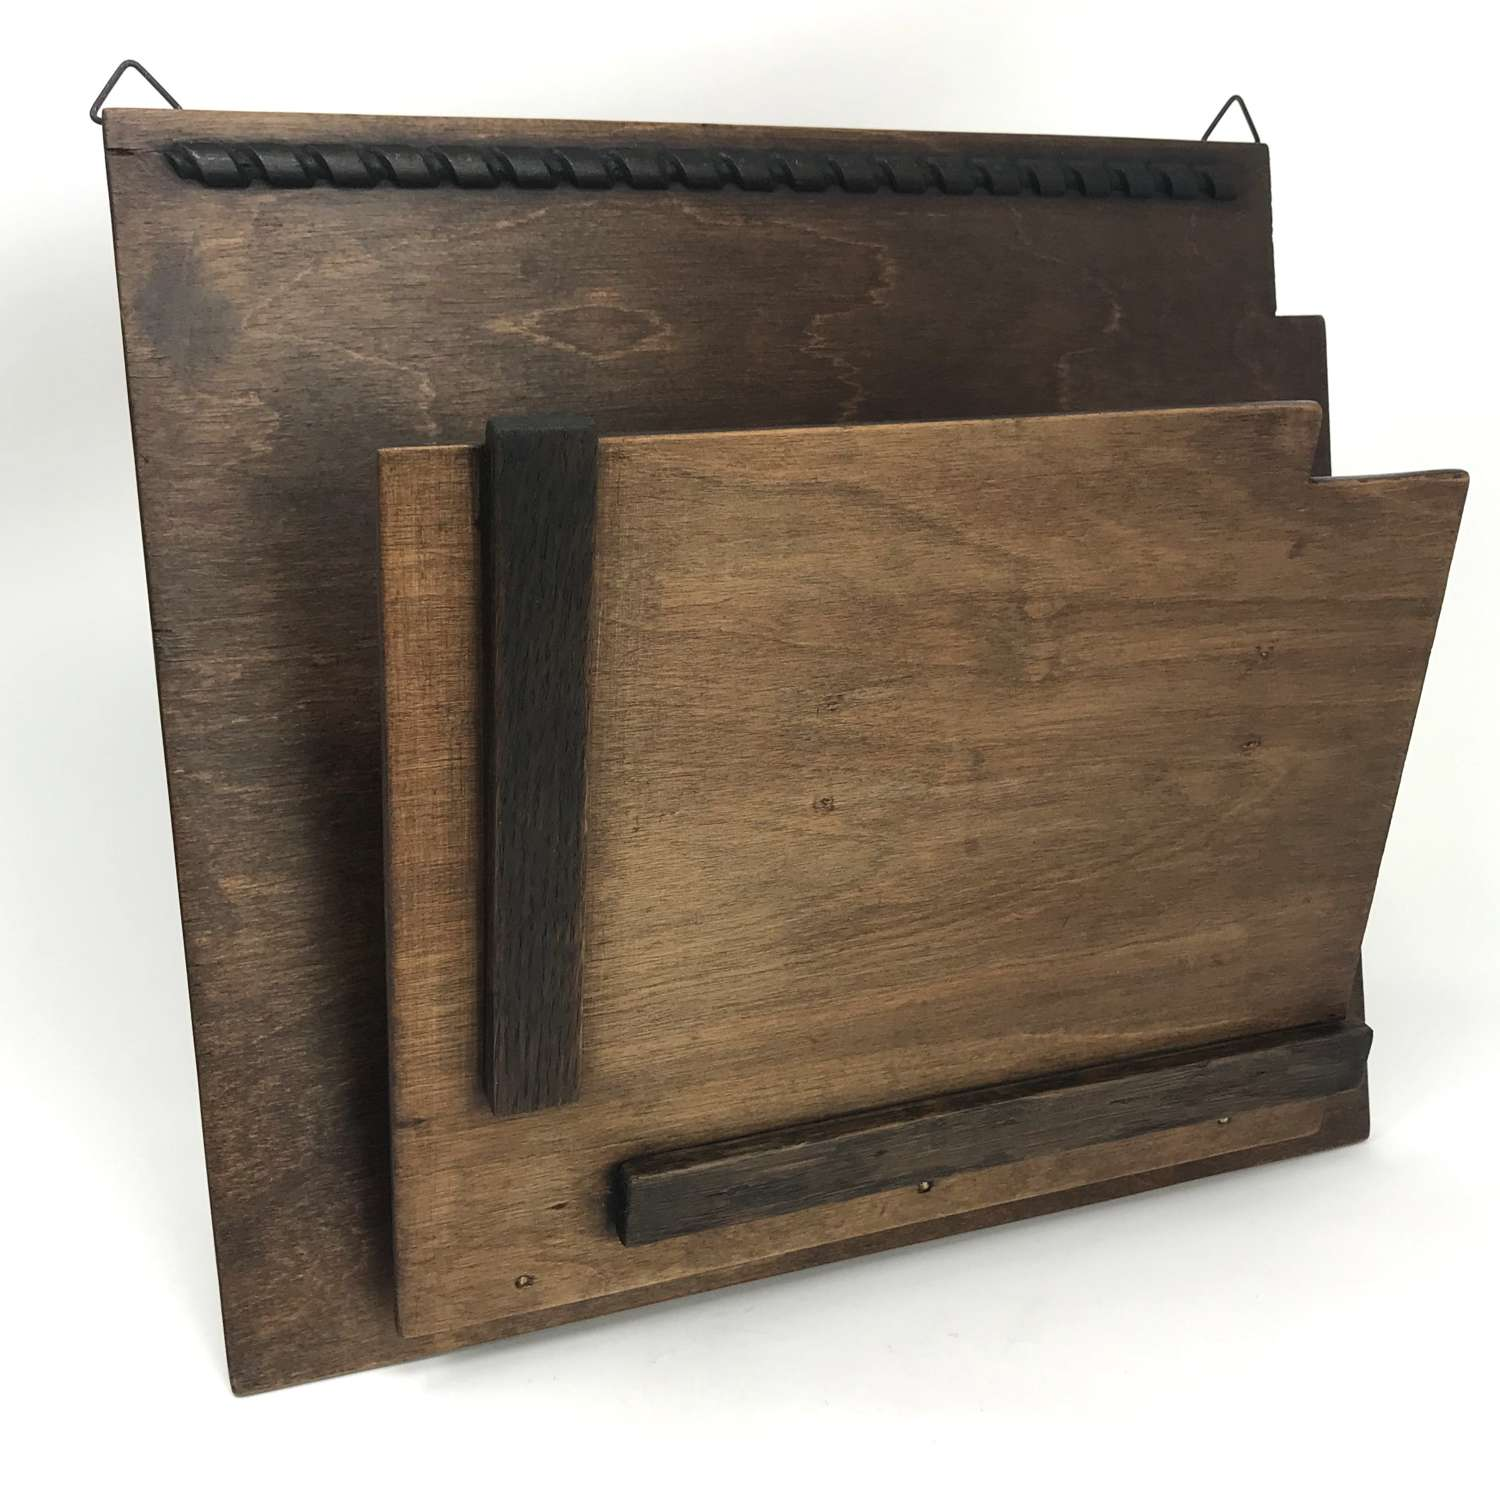 Amsterdam School Modernist Wooden Newspaper Holder 1920s